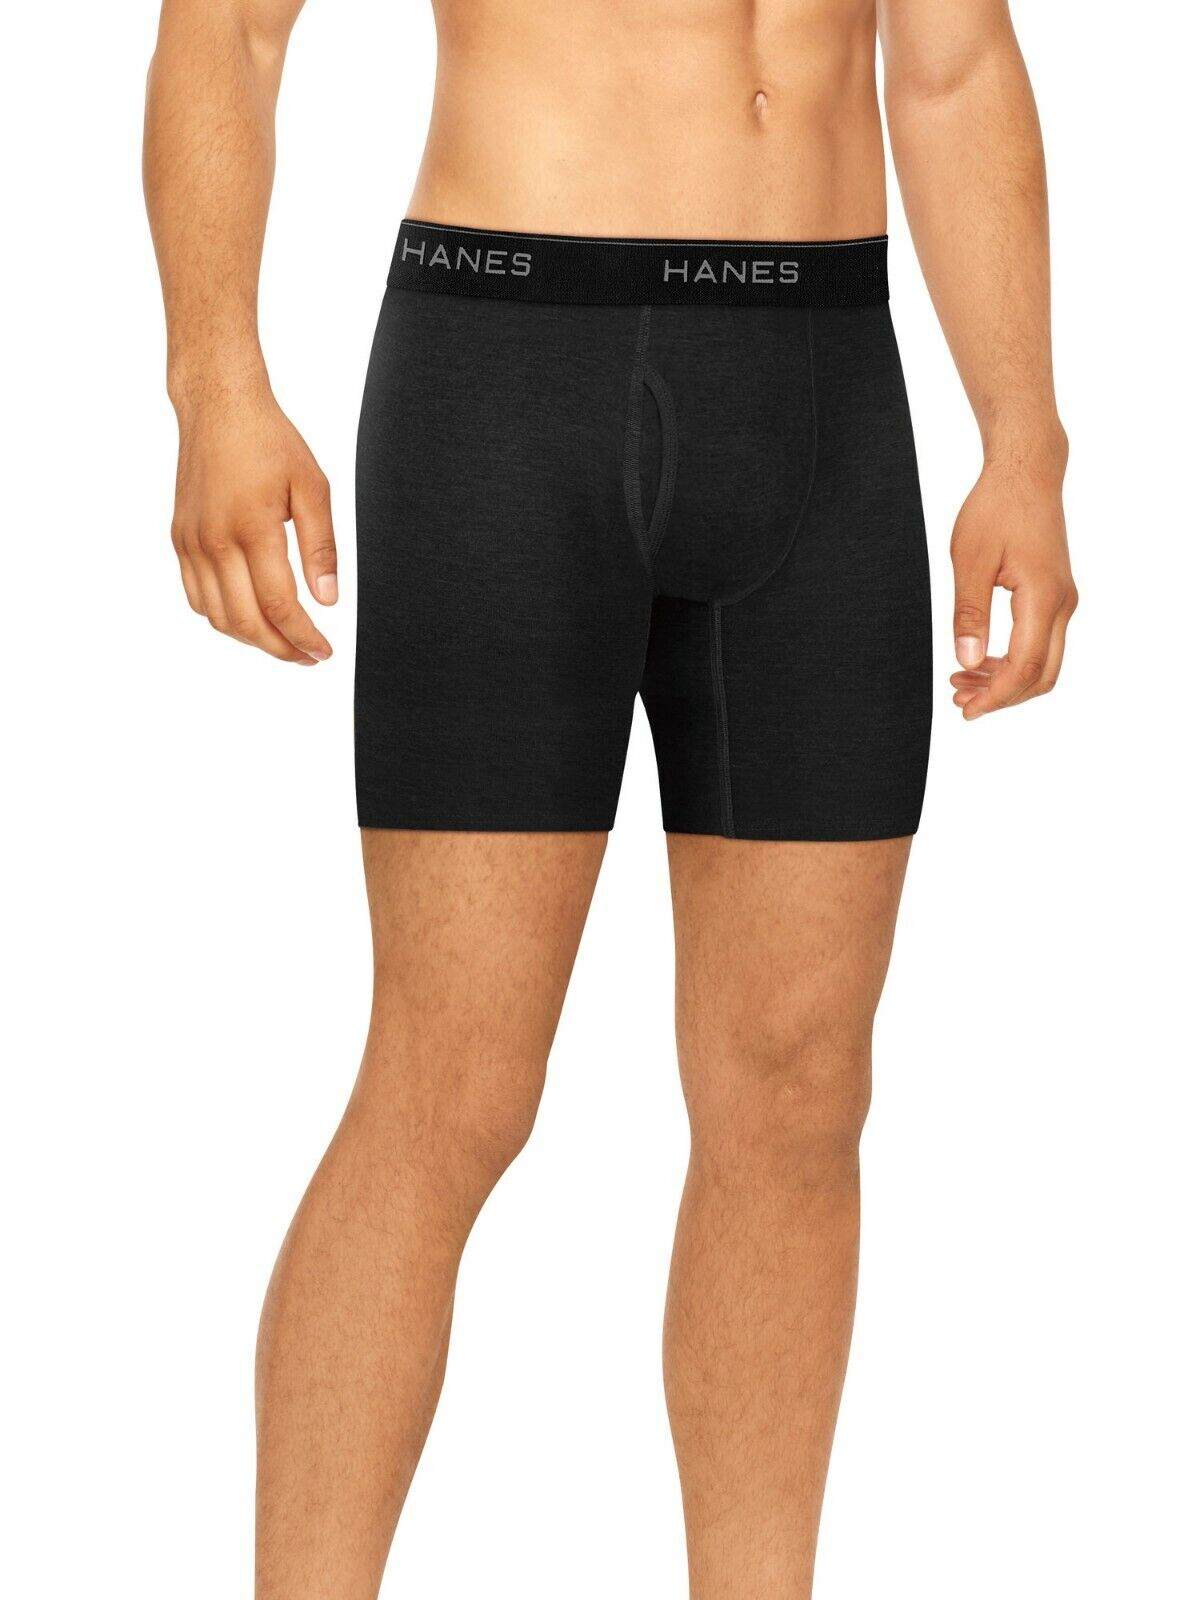 Hanes Men's Boxer Brief 3 pair Clothing, Shoes & Accessories